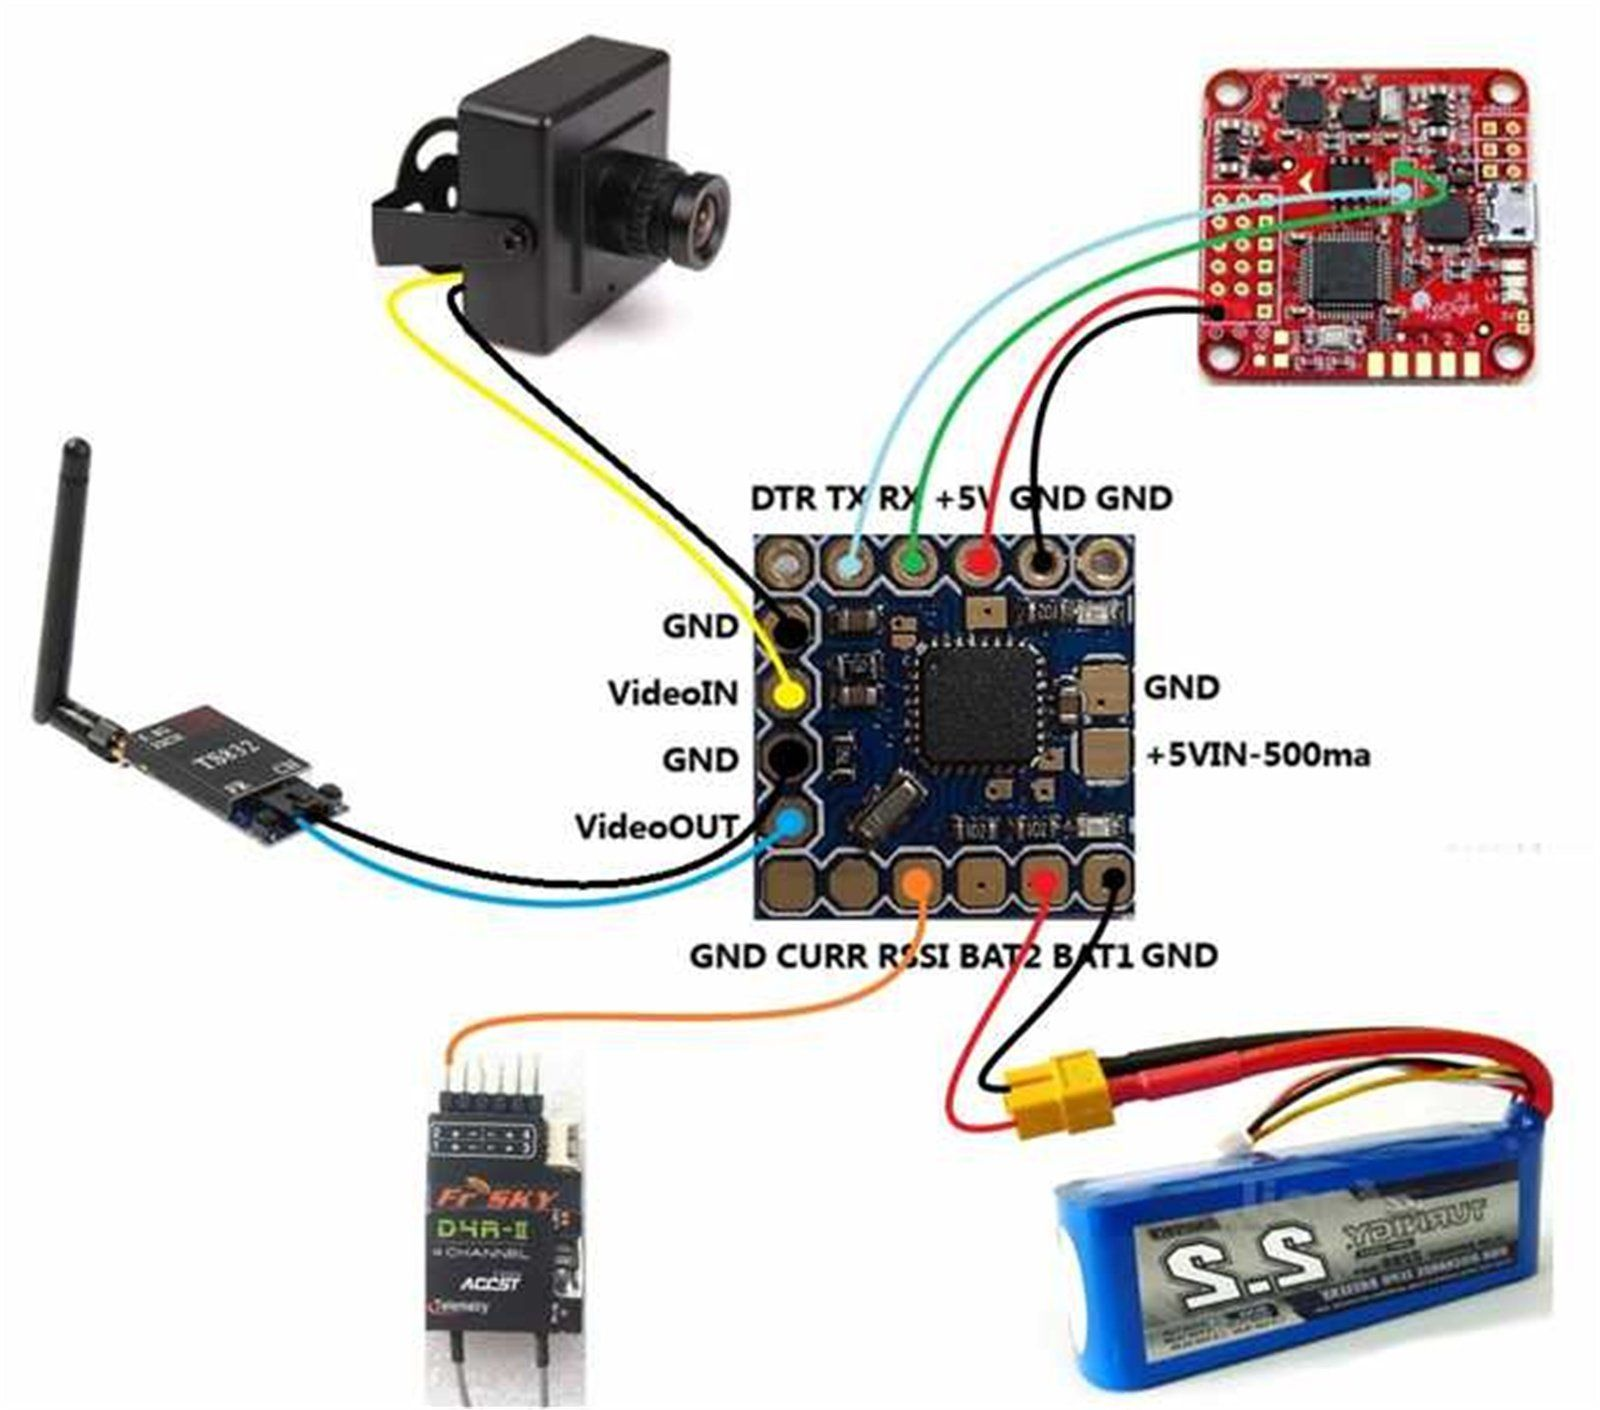 miniosd?w=660 fpv and osd gr33nonline ts832 transmitter wiring diagram at fashall.co